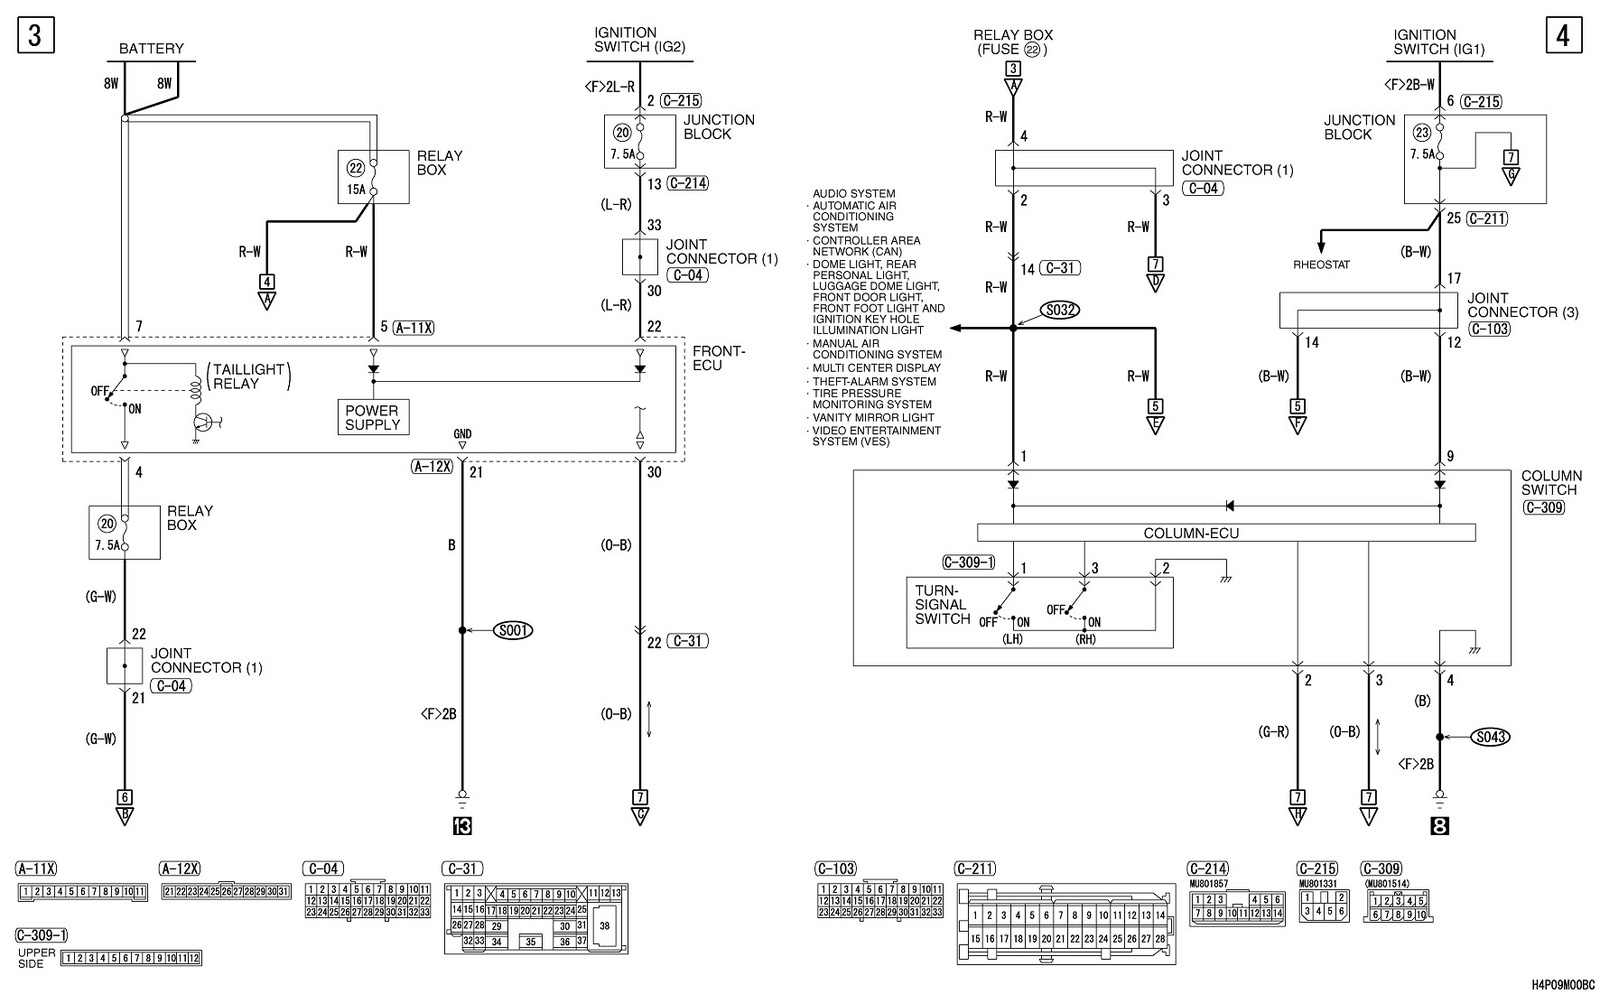 Mitsubishi Montero Wiring Diagram Wiring Diagrams Source 1993 Mitsubishi  Montero Engine 1993 Mitsubishi Montero Fuse Box Diagram